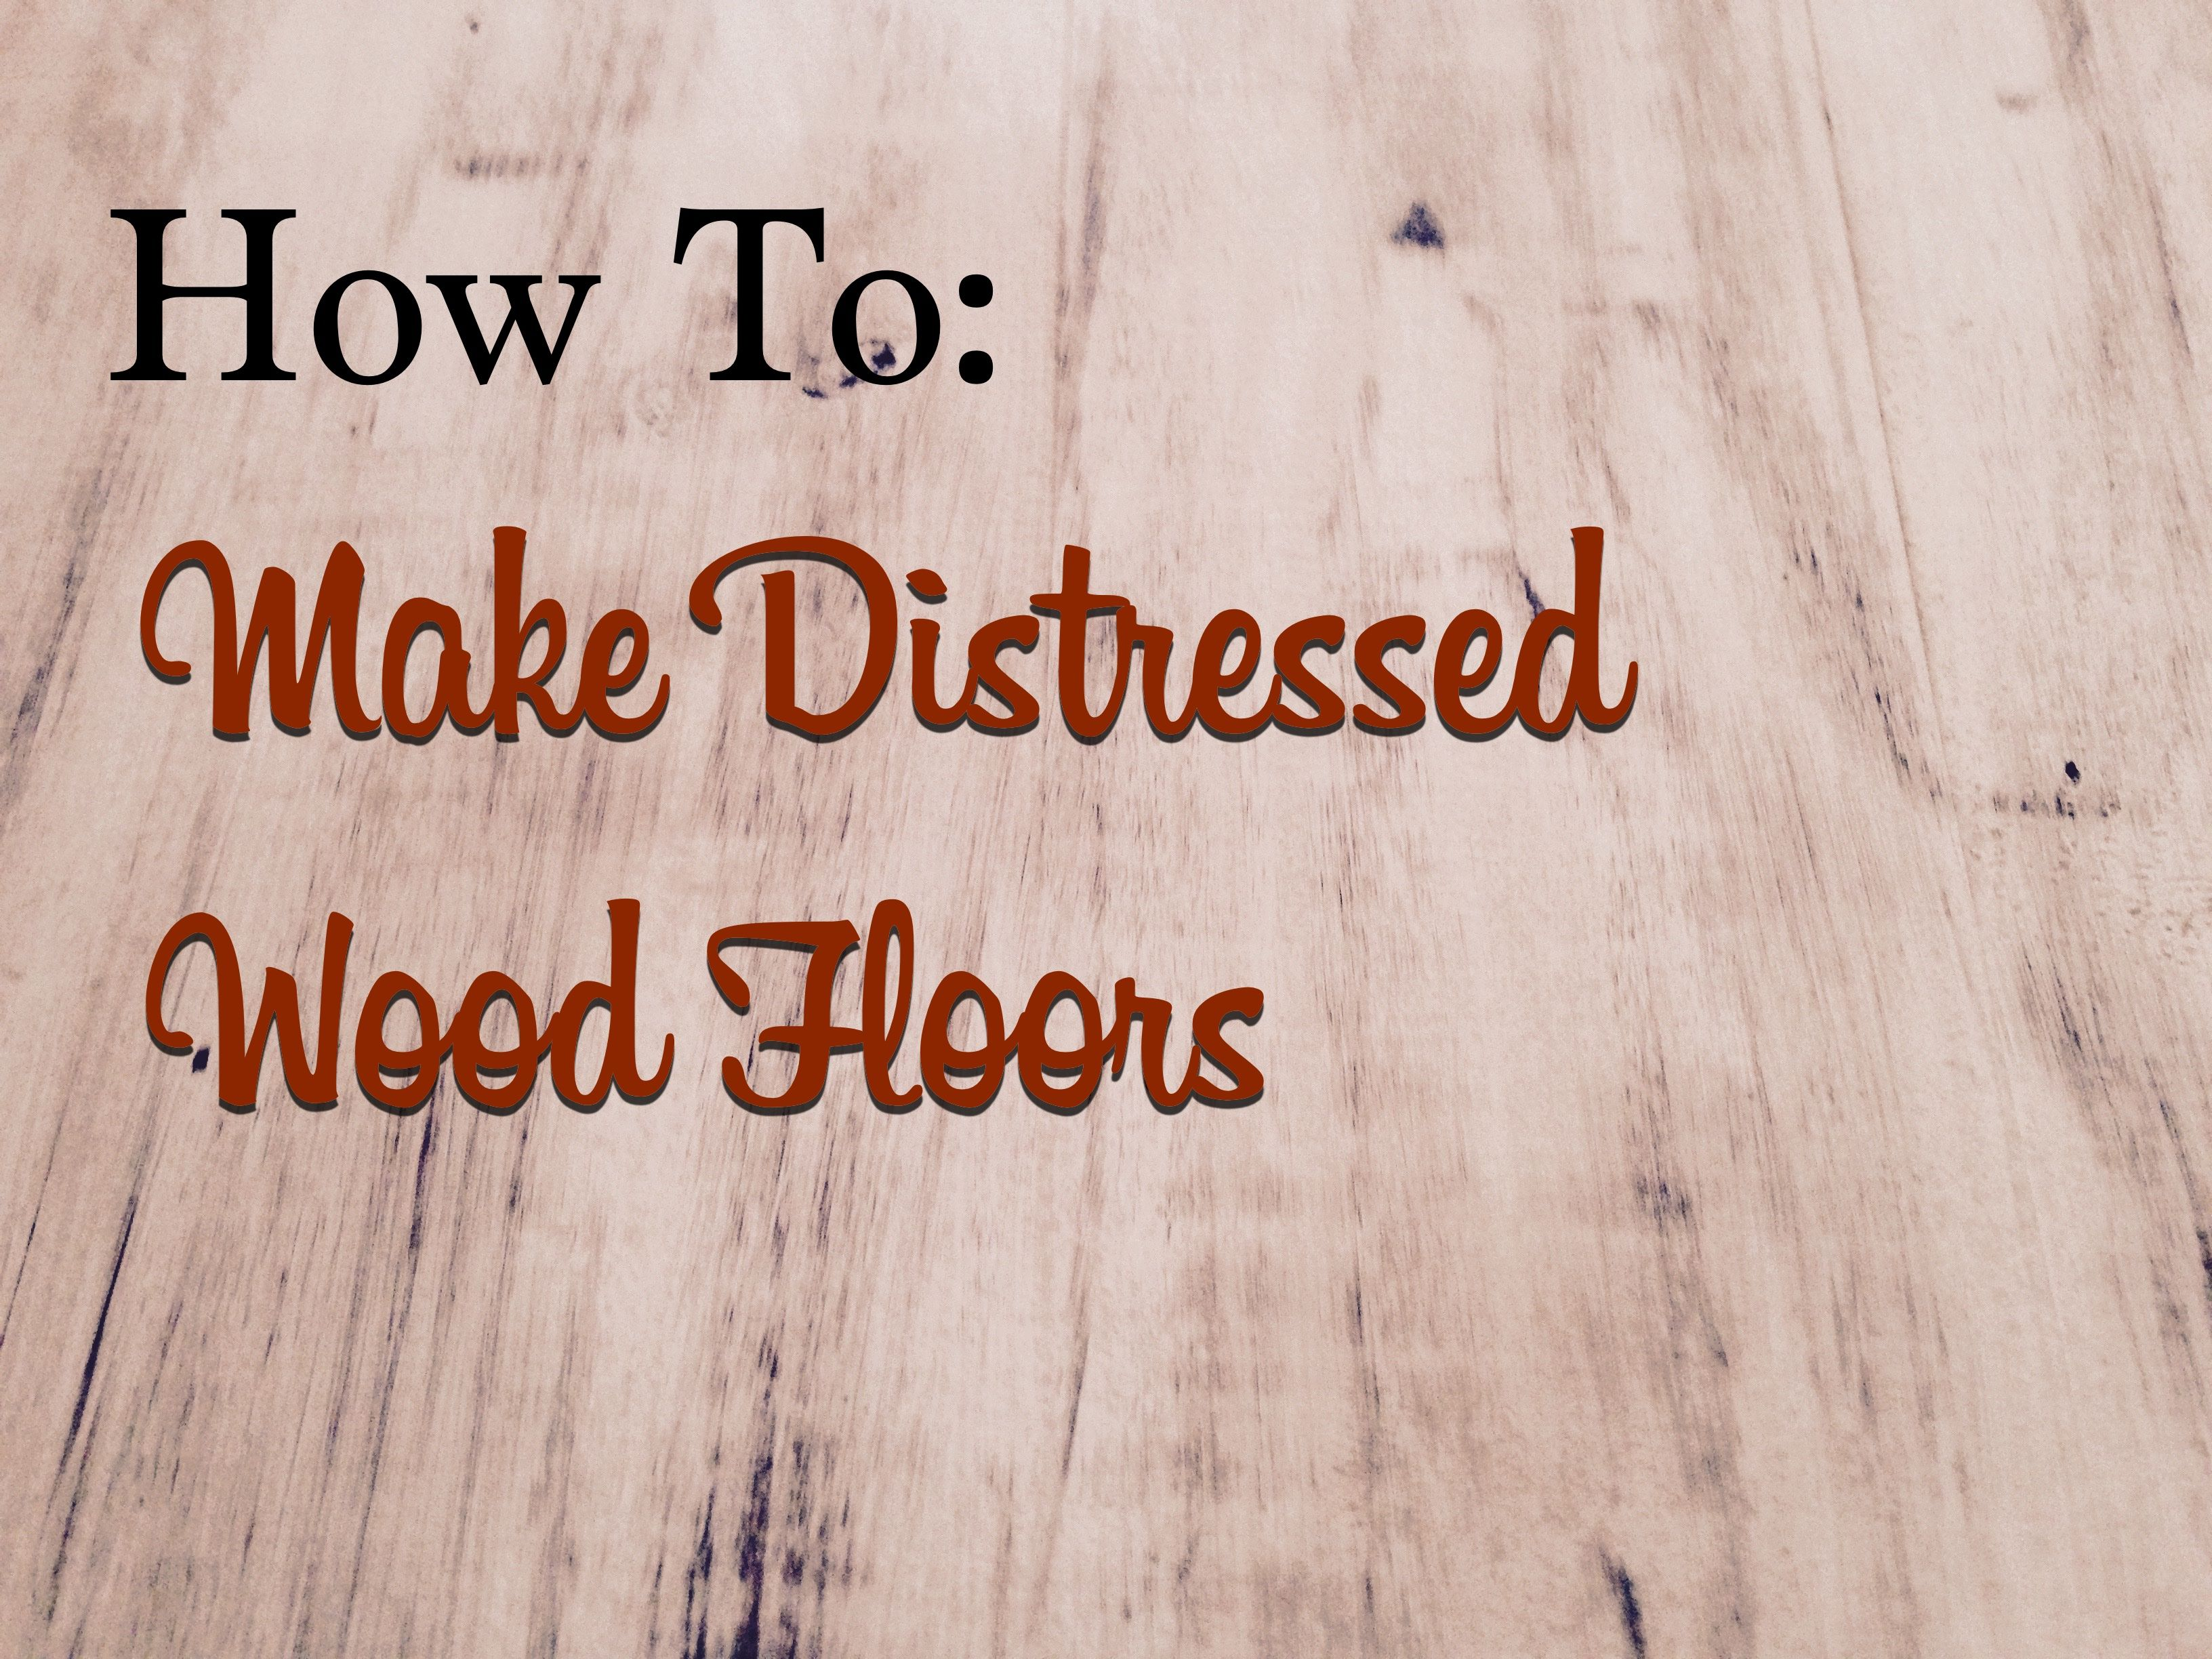 How To Make Distressed Wood Floors   The Craftsman Blog ...